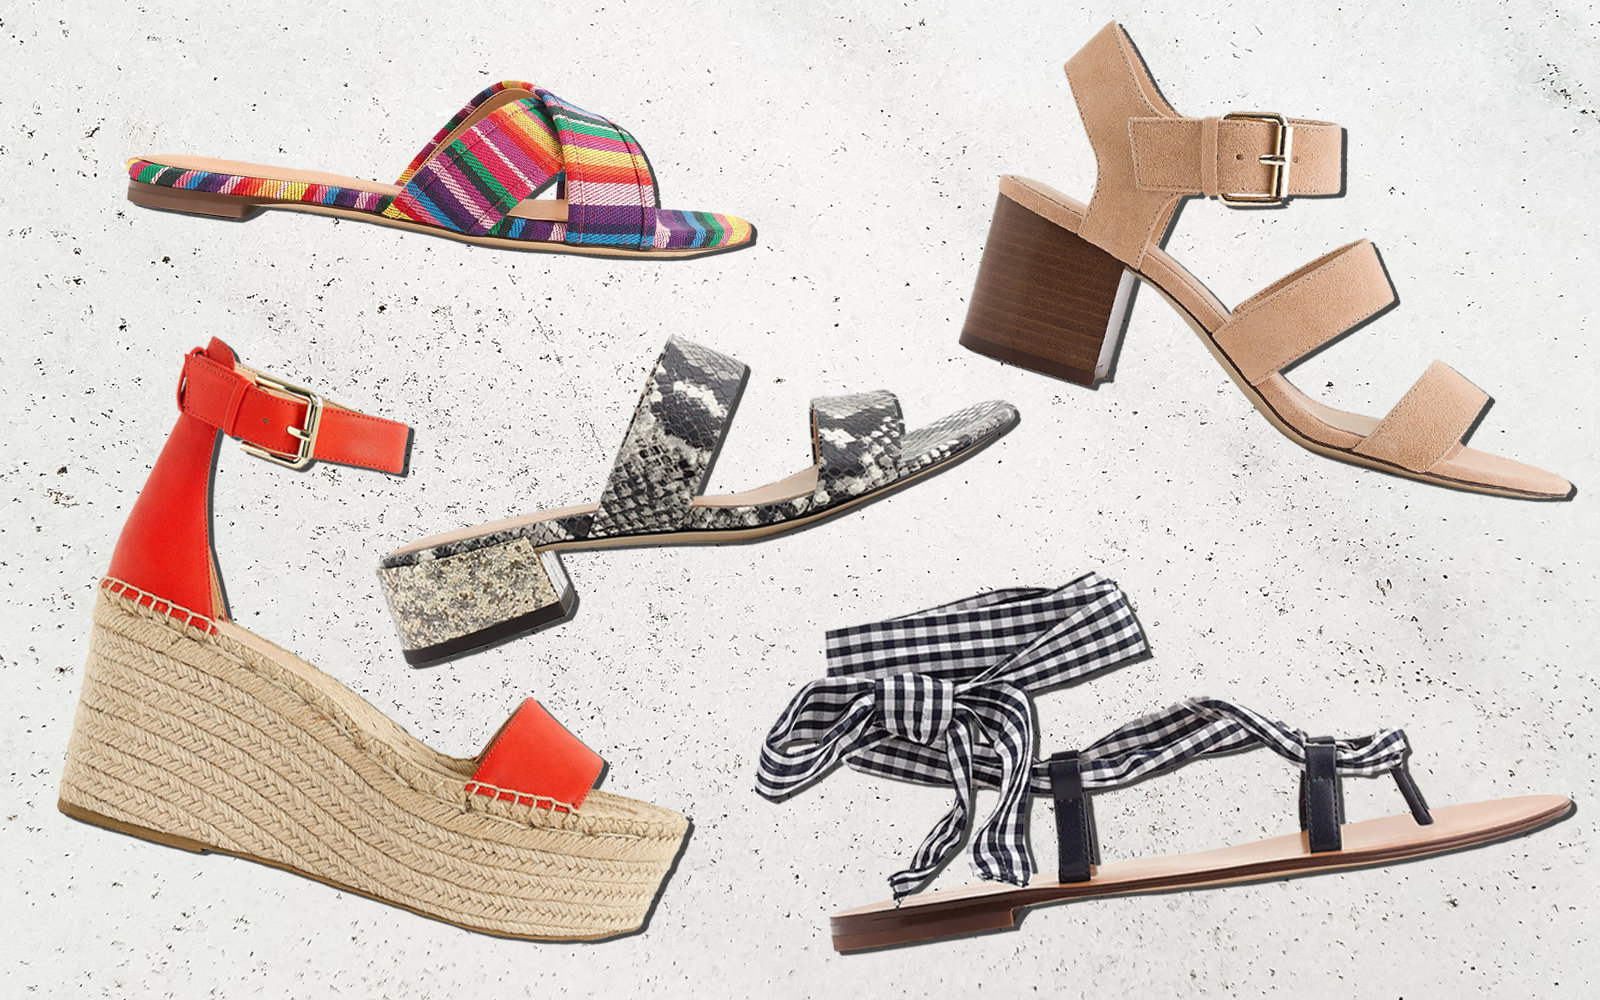 midsummer-sandals-sale-jcrew-JCREWSANDALS0818.jpg